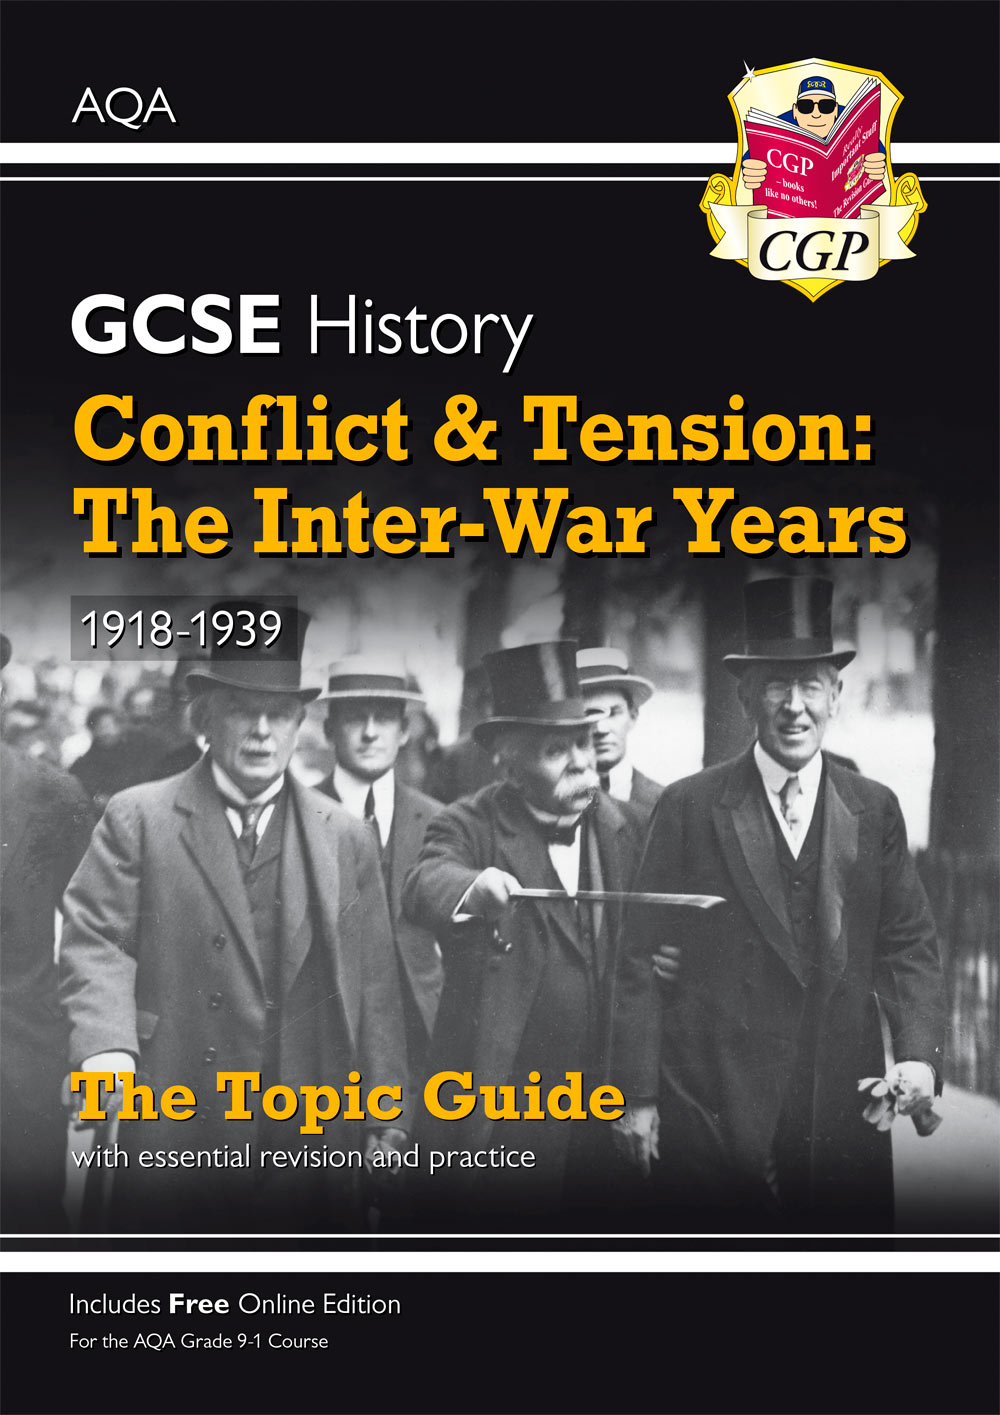 HACTO41 - Grade 9-1 GCSE History AQA Topic Guide - Conflict and Tension: The Inter-War Years, 1918-1